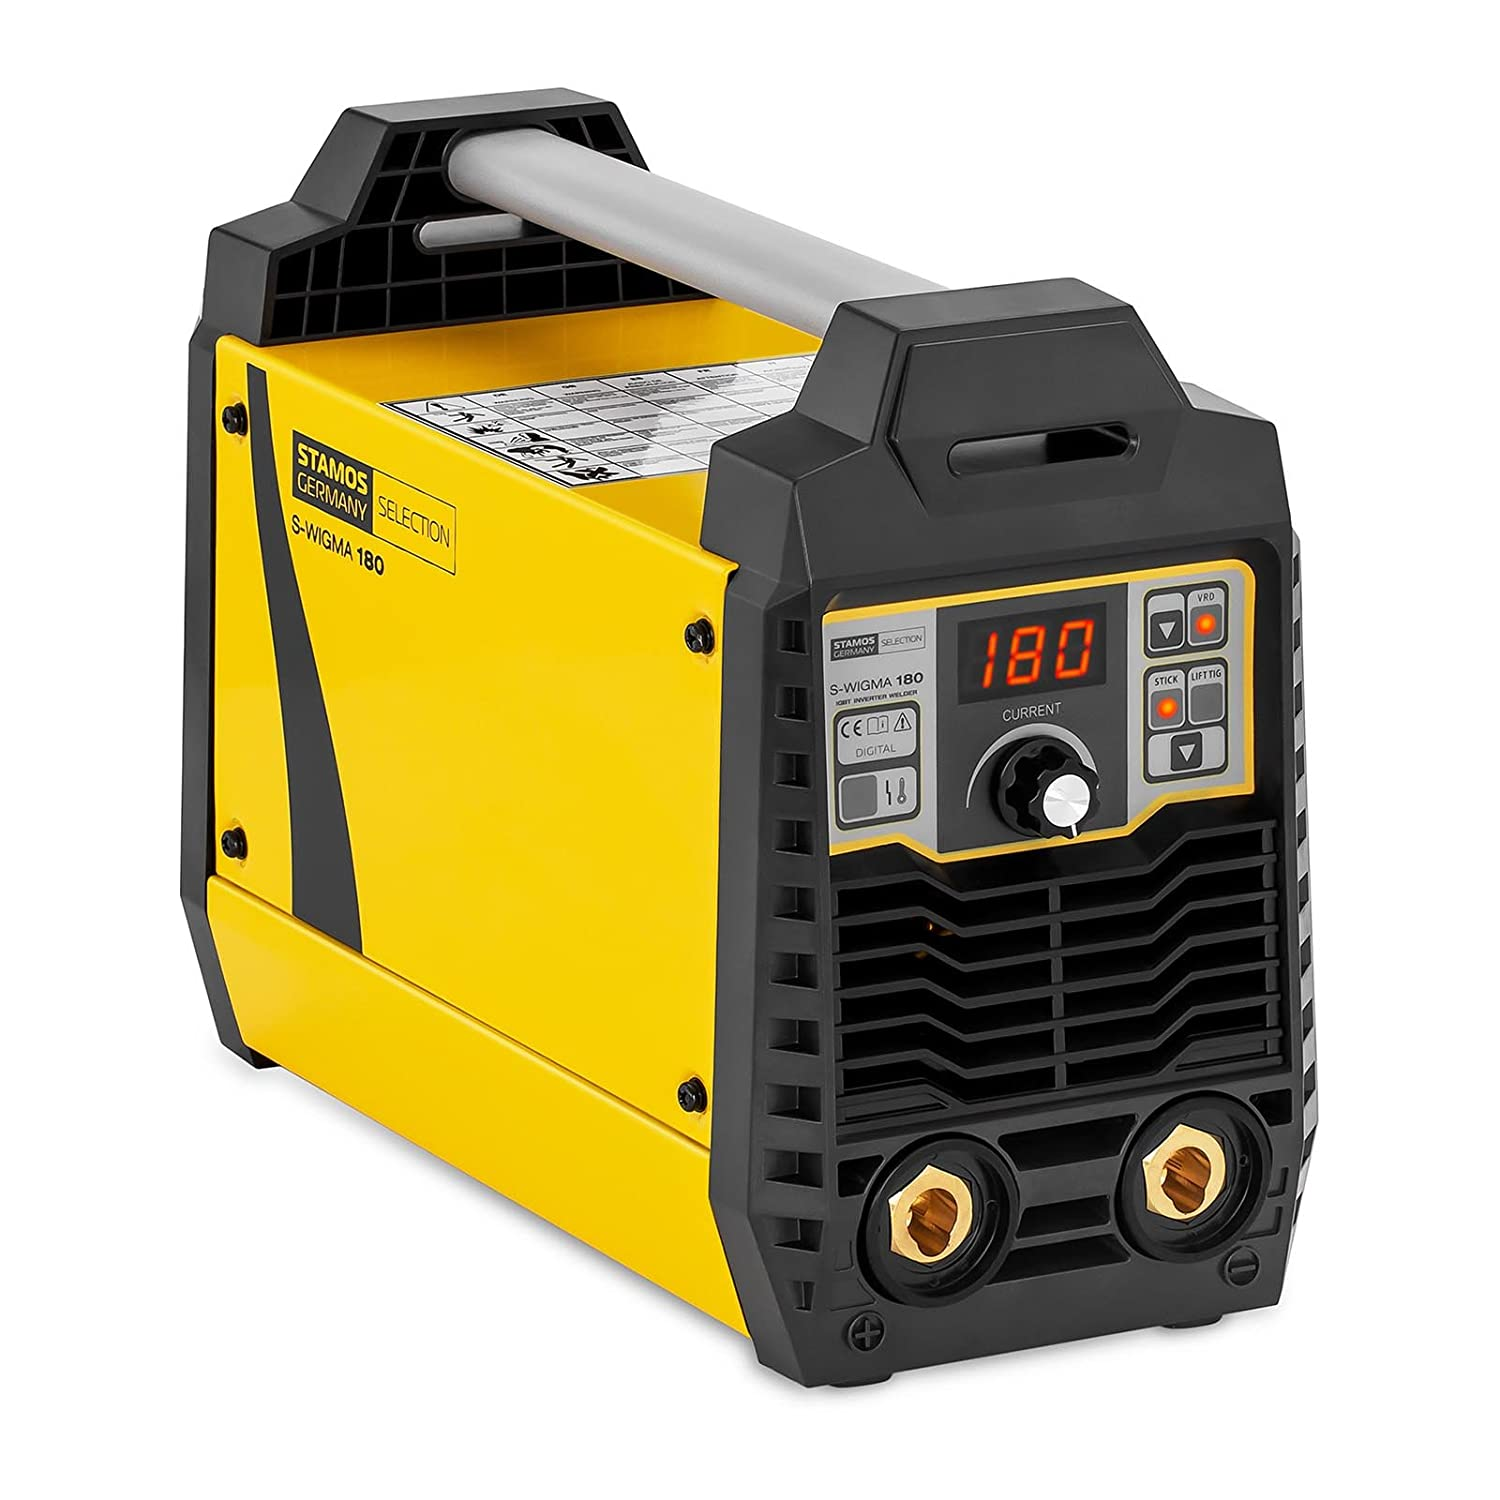 Stamos Welding Soldador MMA S-WIGMA 180 (180 A, Panel de control digital Pantalla digital, Hot Start, Anti Stick, Inverter IGBT): Amazon.es: Bricolaje y ...